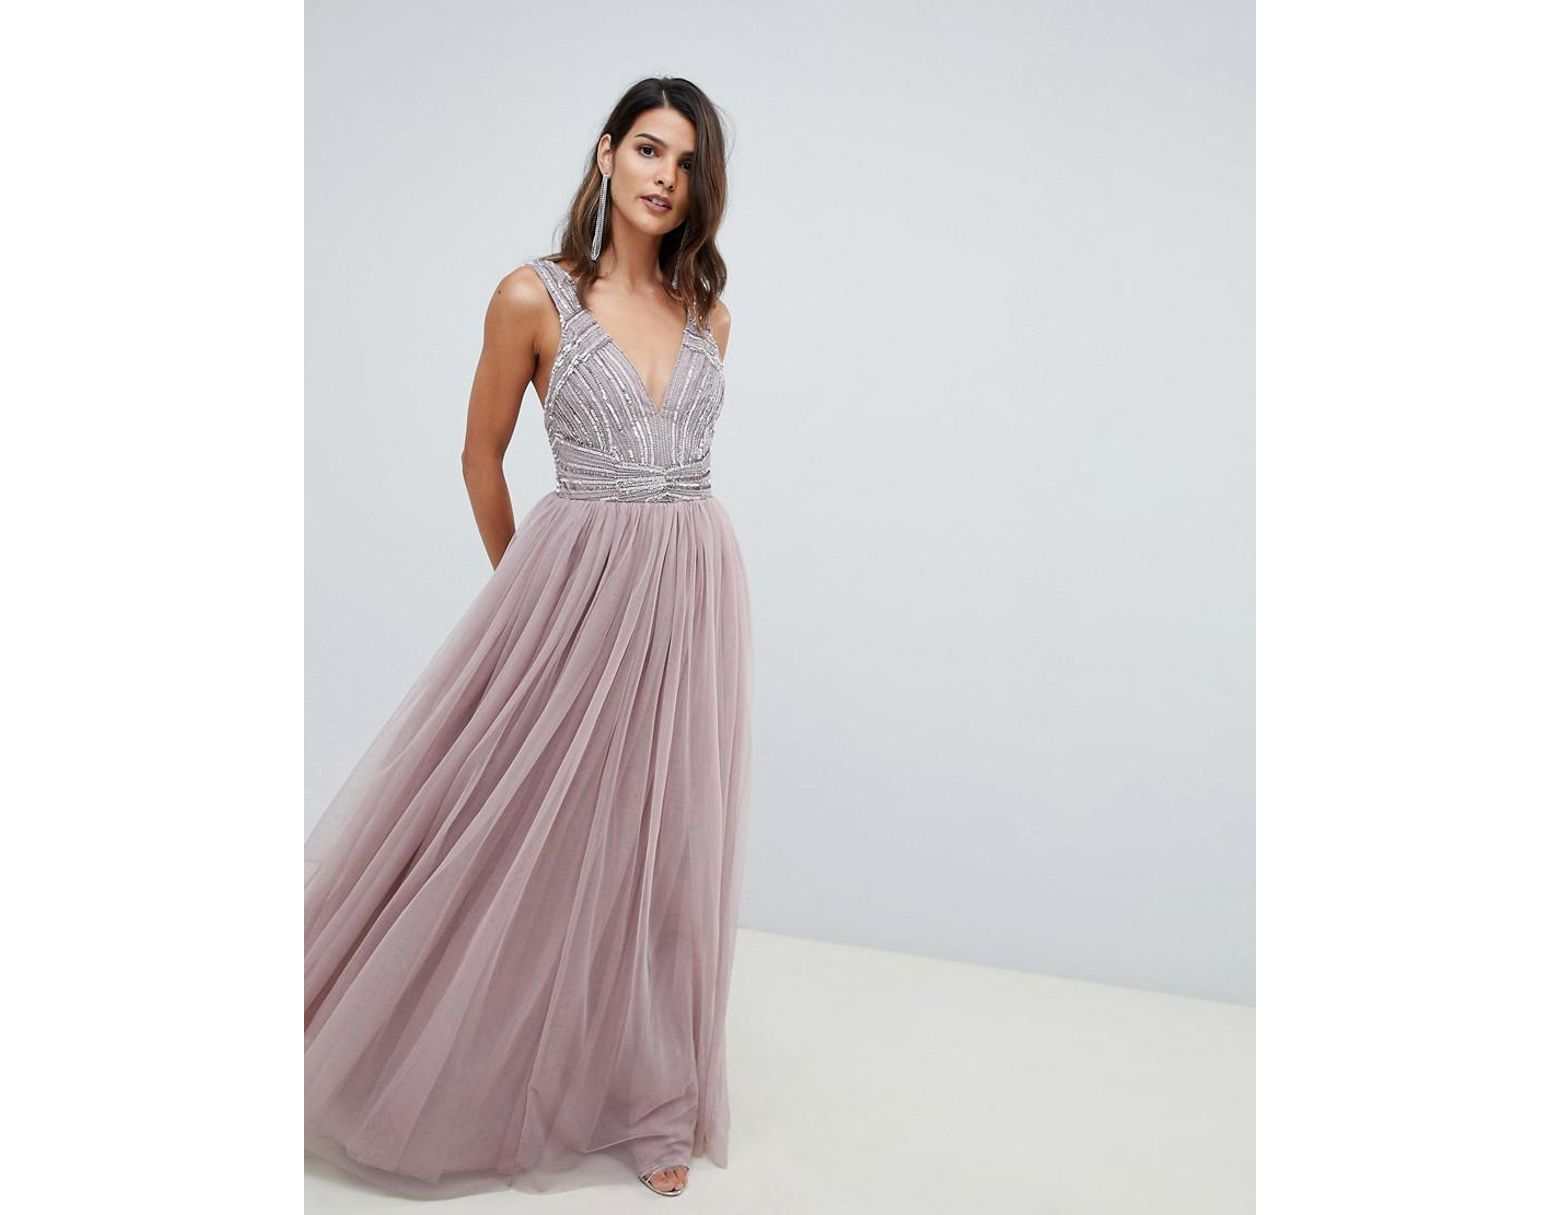 fe66f4bf131 ASOS Maxi Dress In Tulle With Embellished Bodice in Pink - Lyst